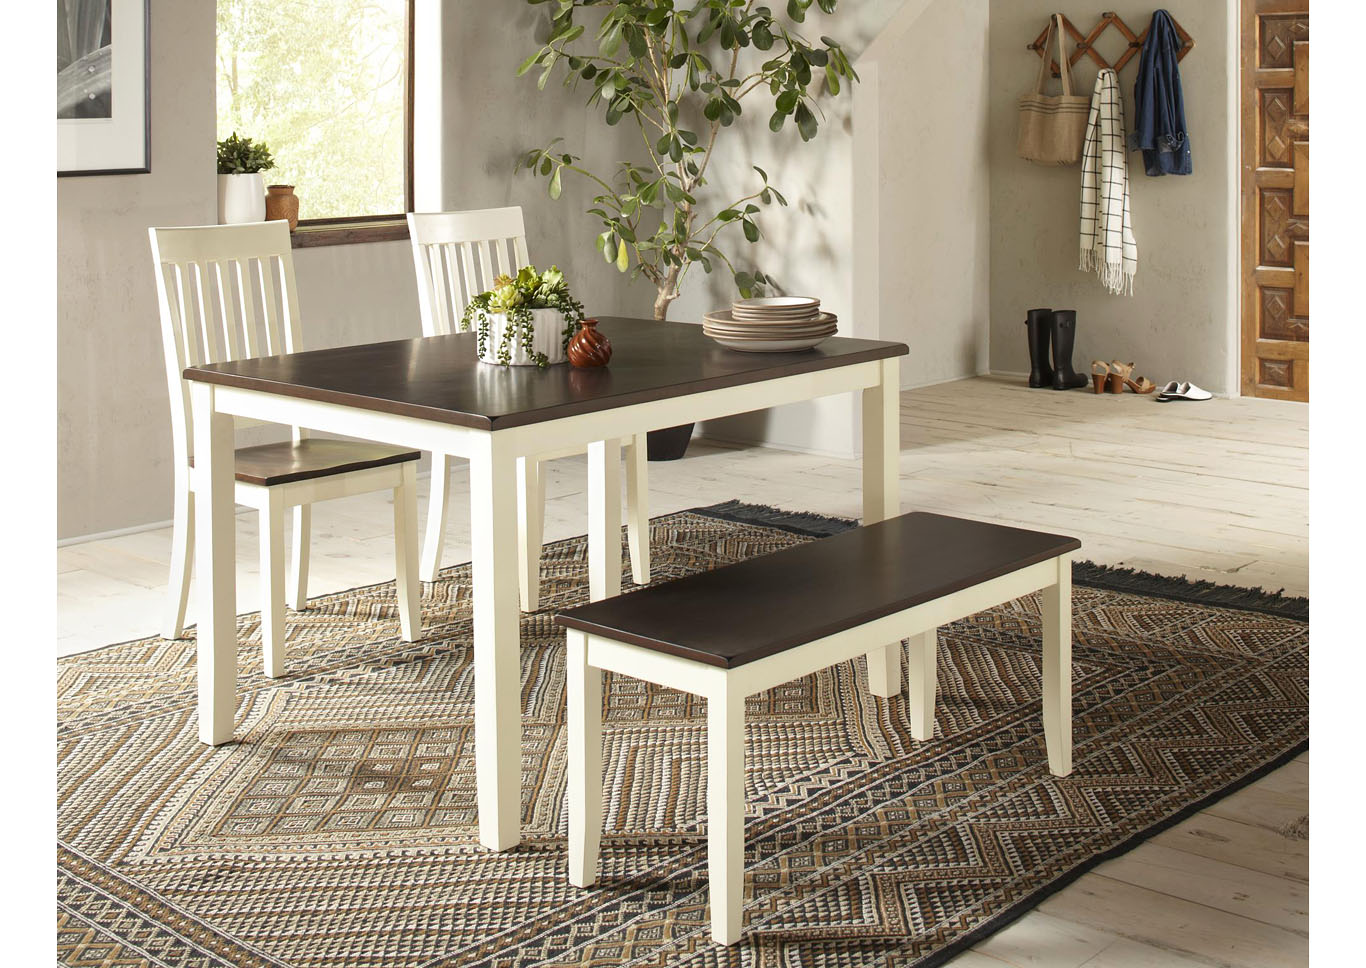 Deca 4pc Dining Room Set,Instore